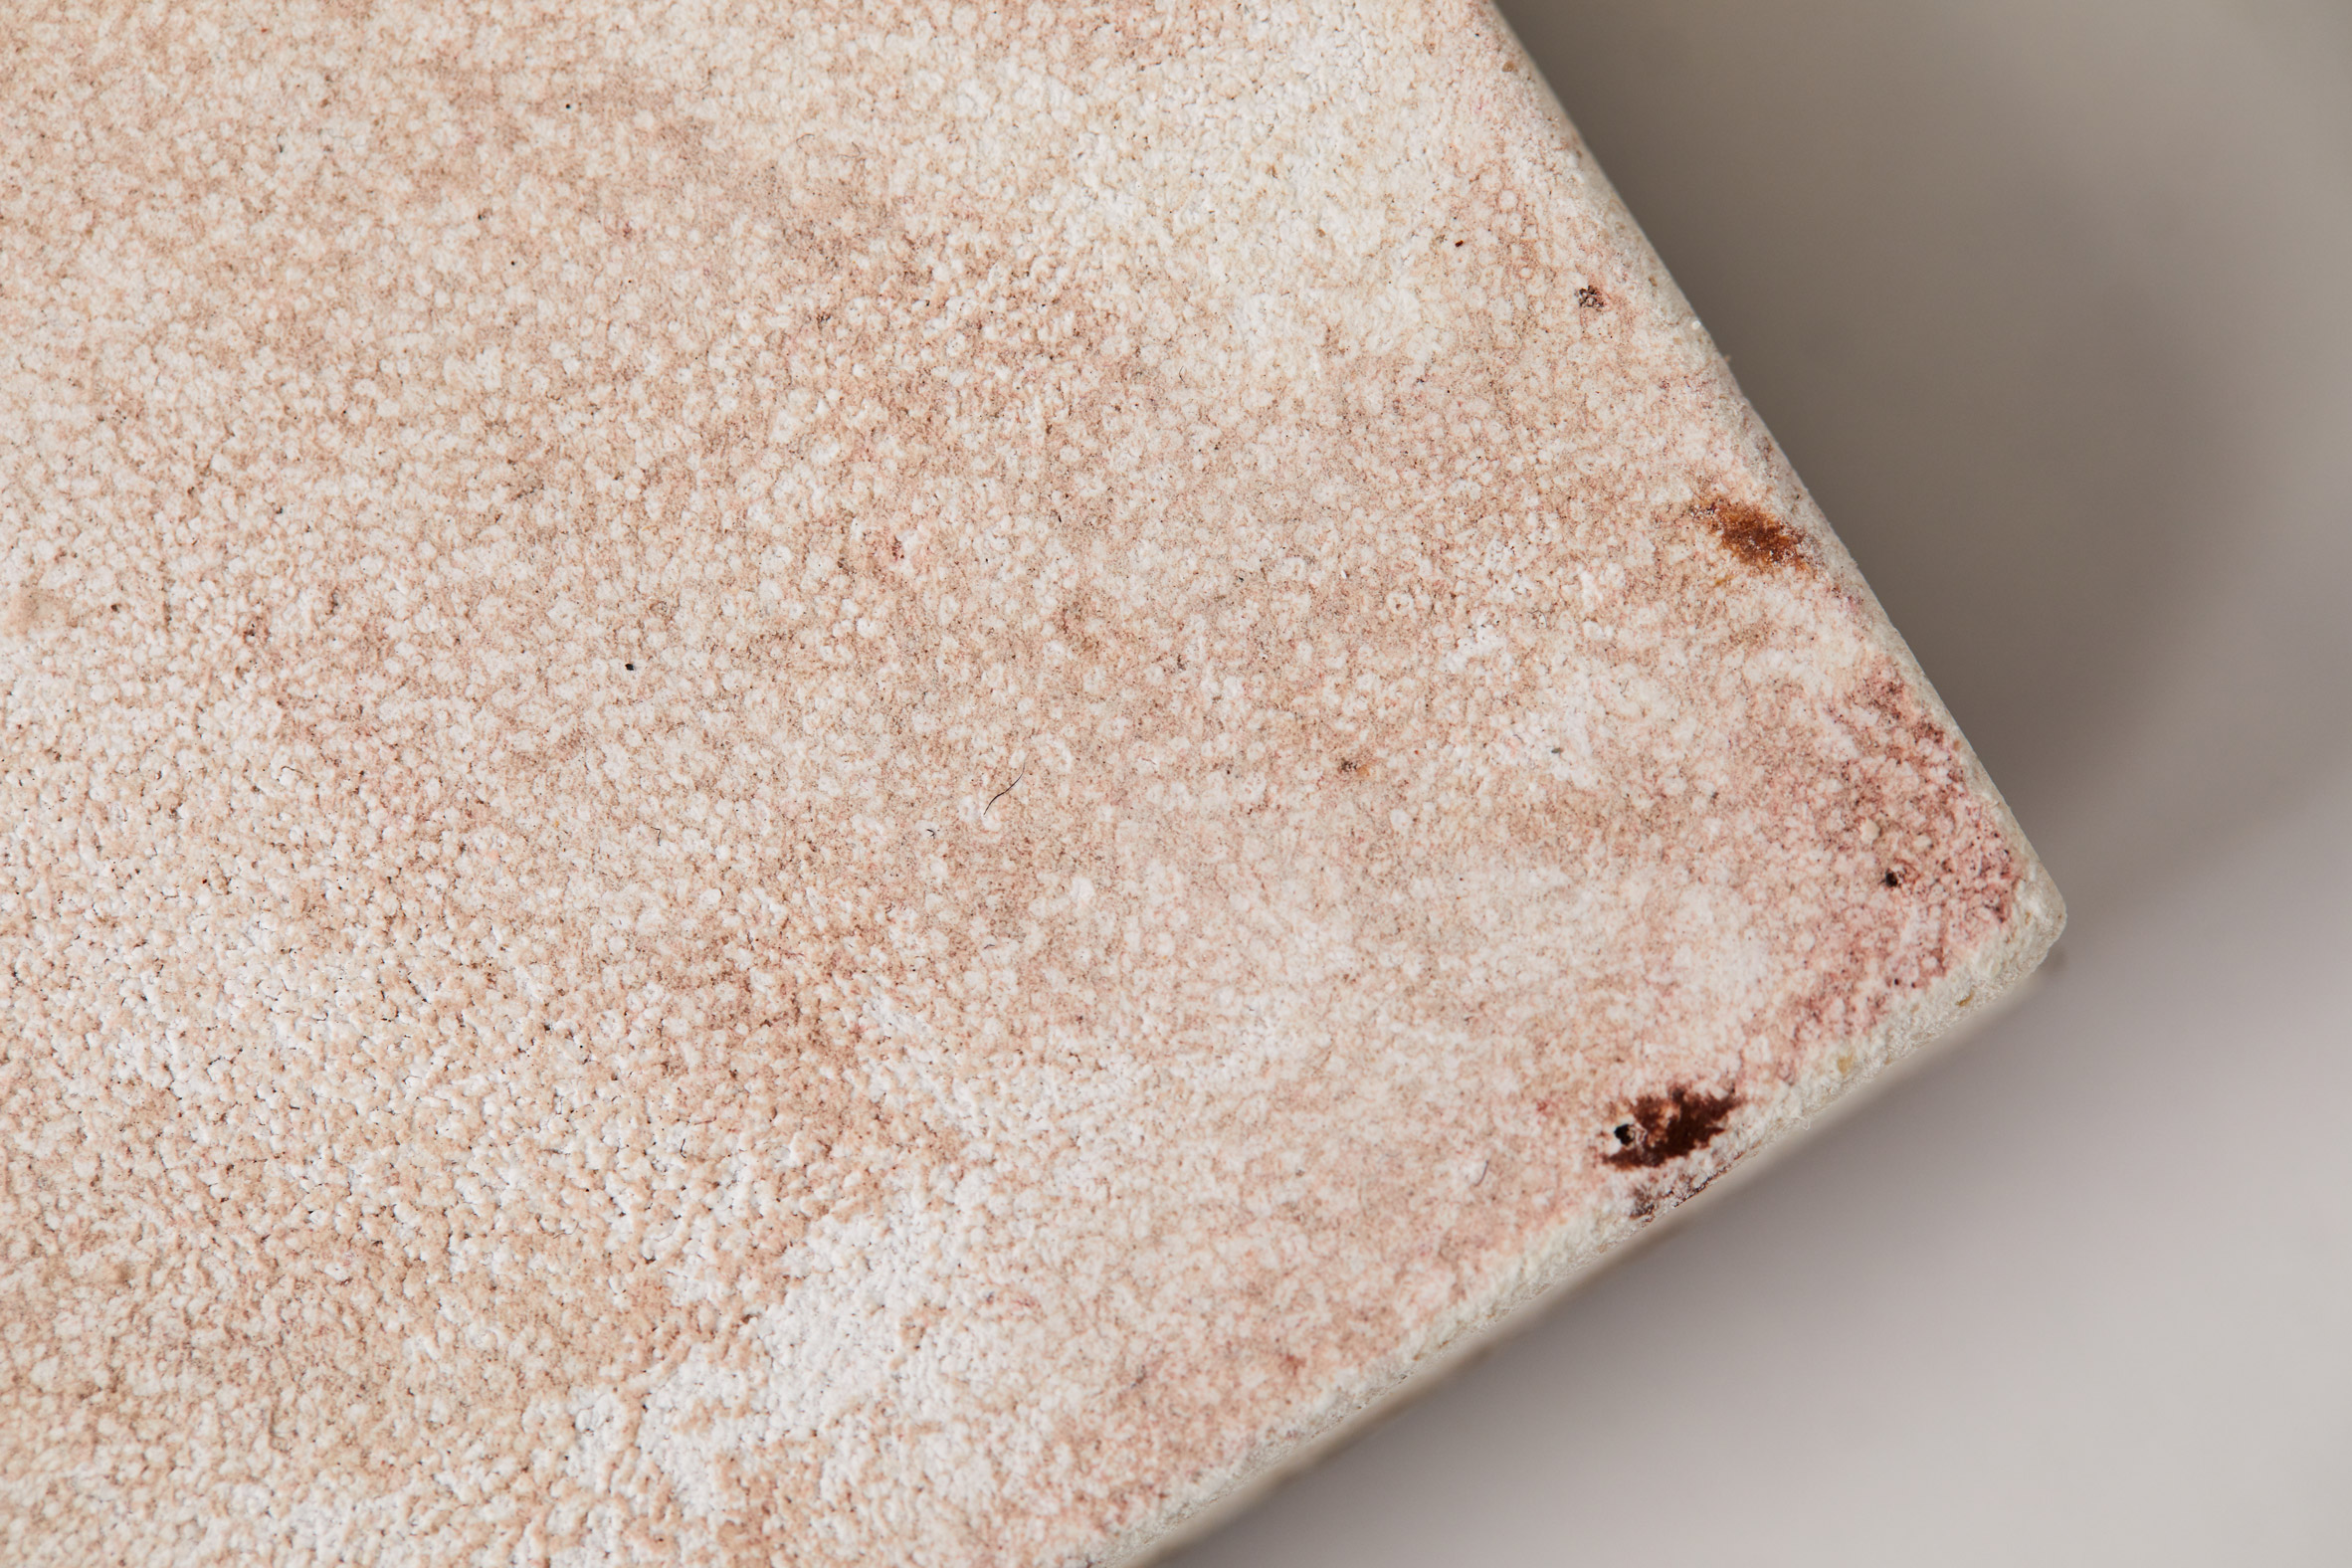 Close-up of texture on bio-concrete tiles made from invasive species